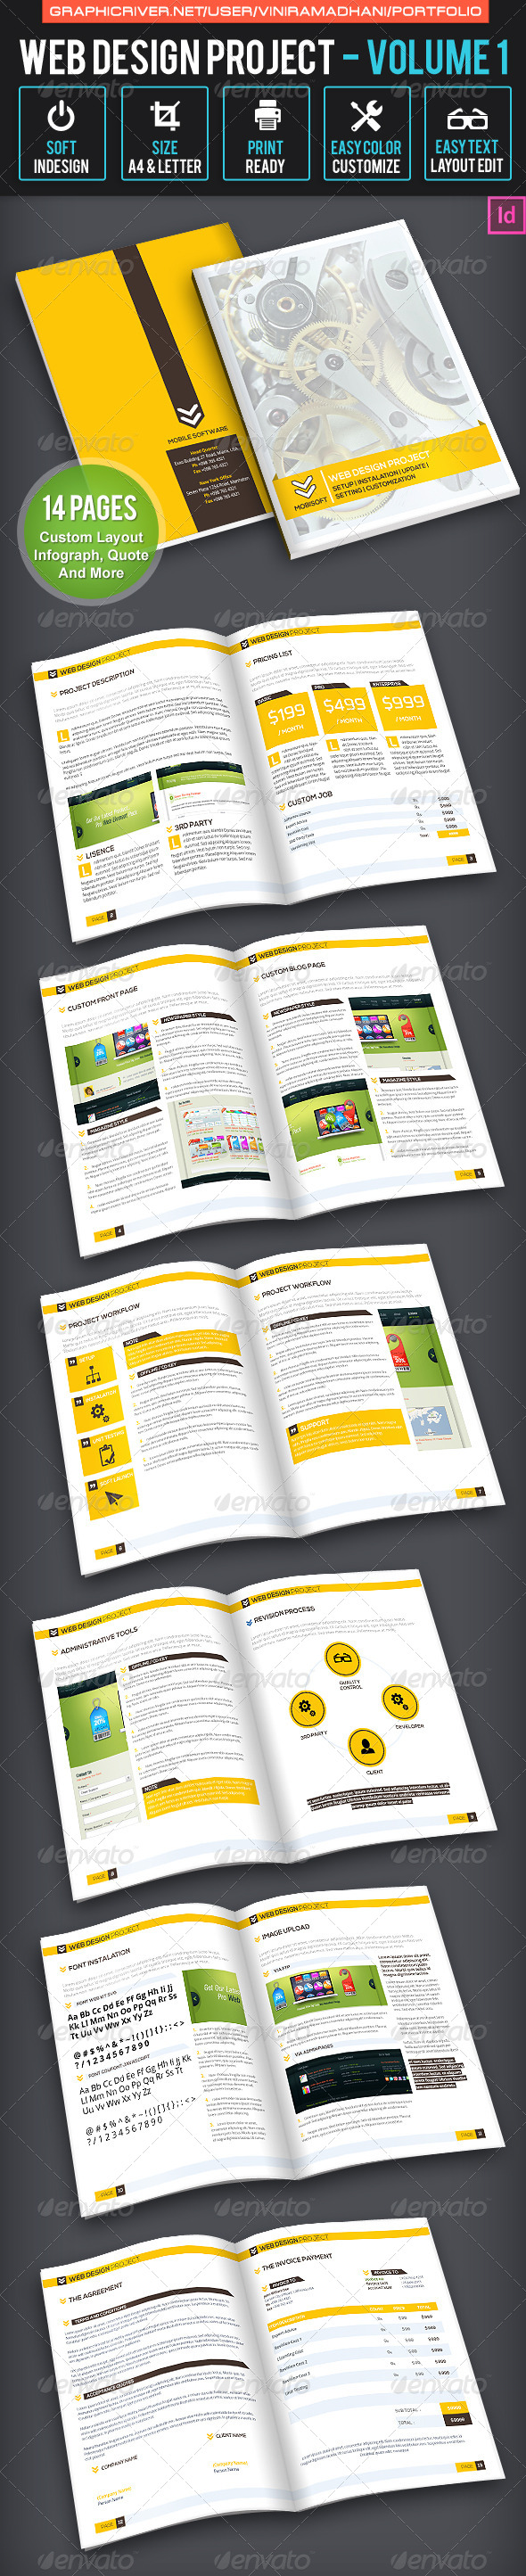 GraphicRiver Web Design Project Volume 1 6629187